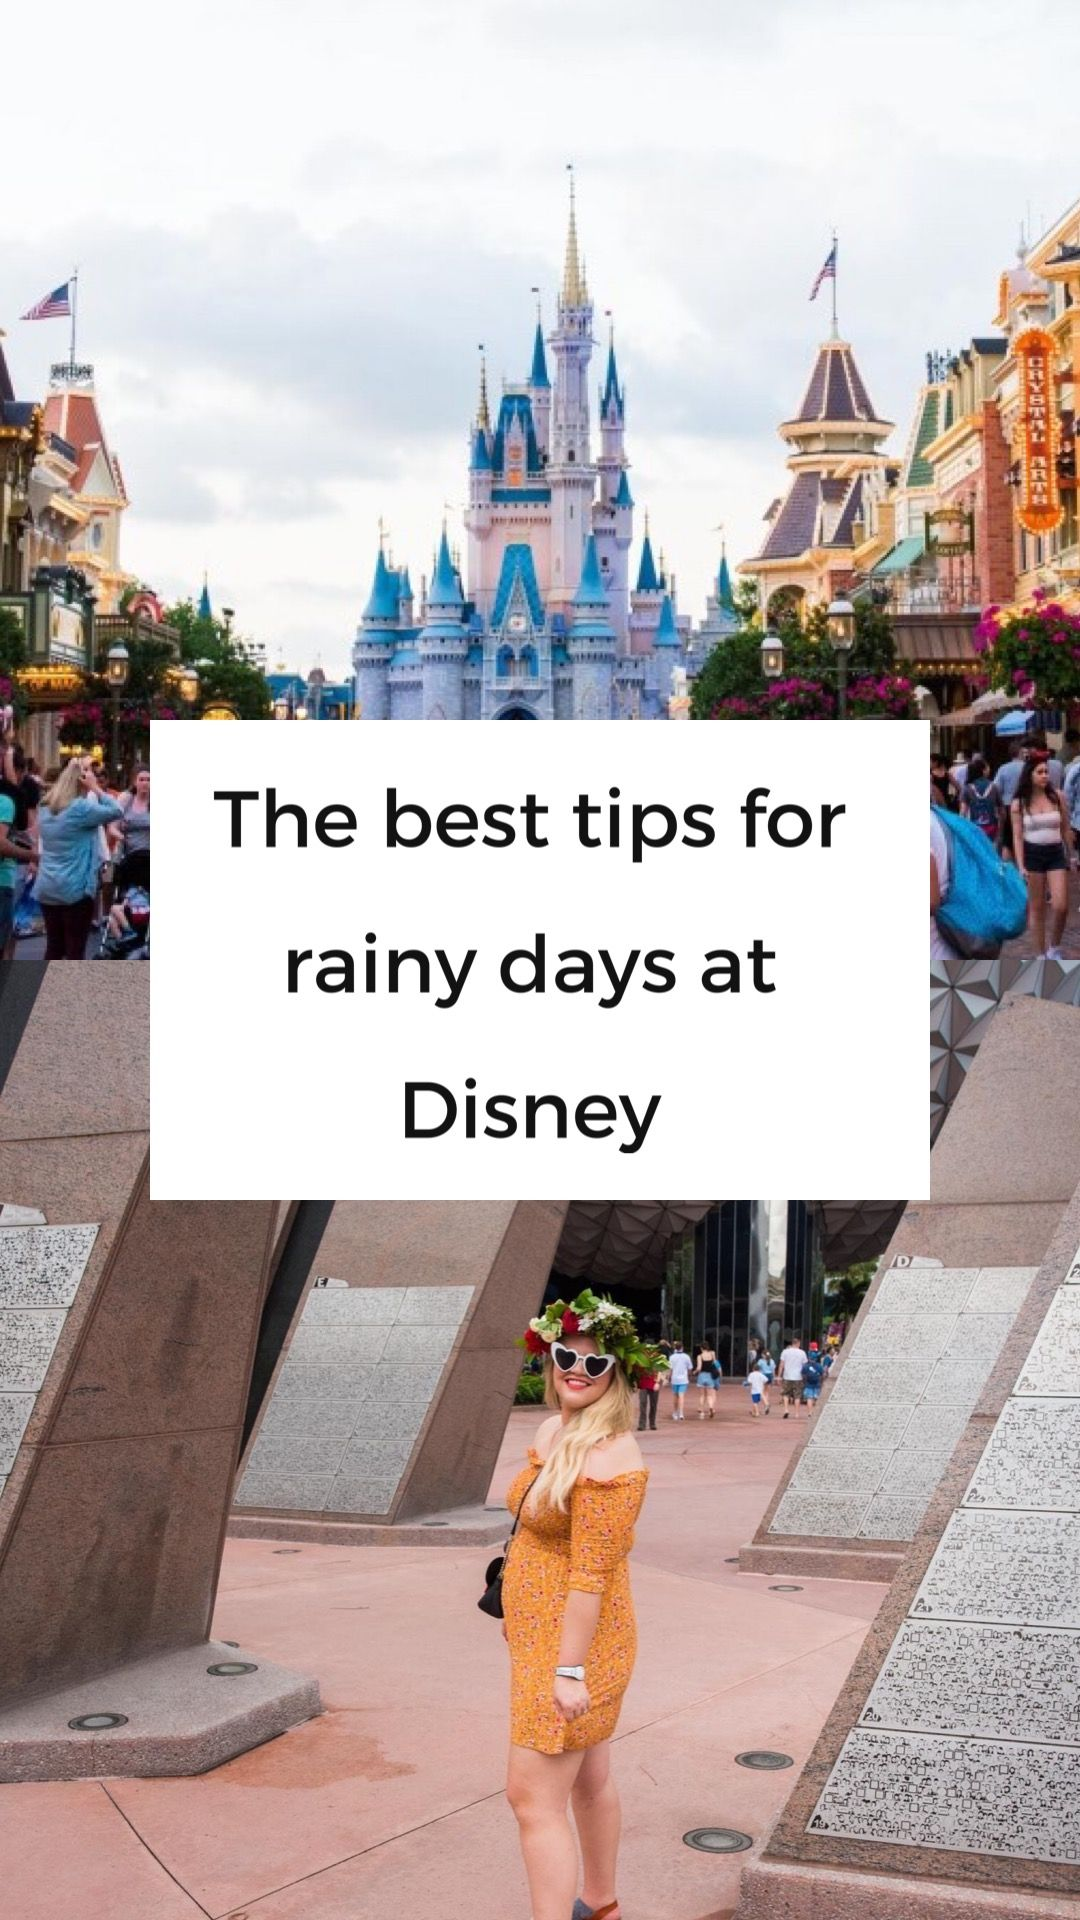 Tips for Rainy Disney Days With images  Disney world